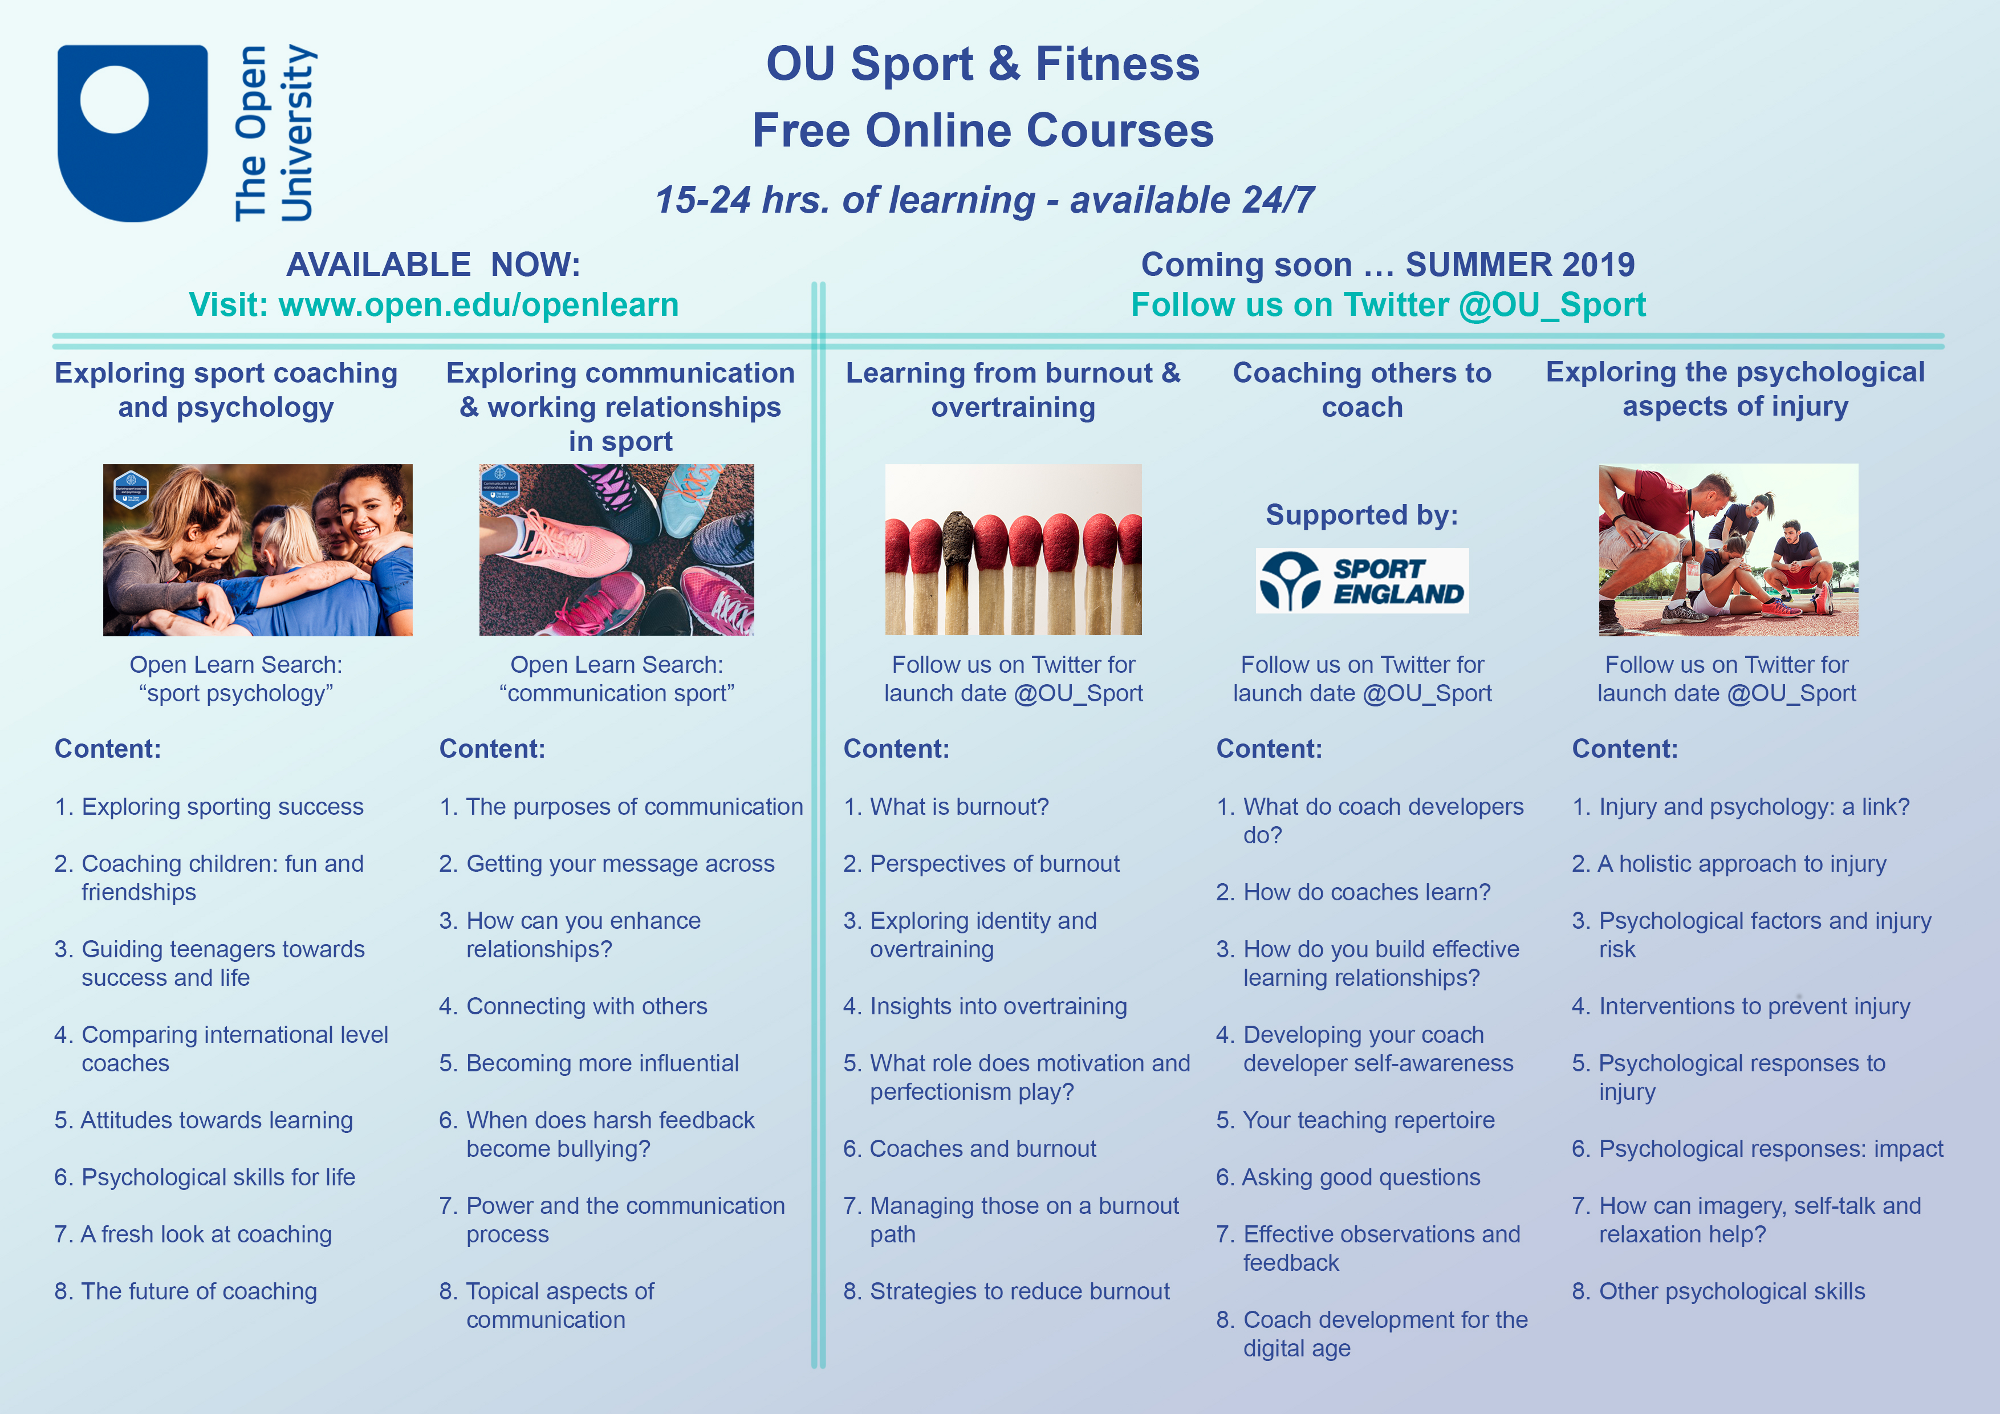 OU Sport & Fitness Team Blog | Commentary from The Open University